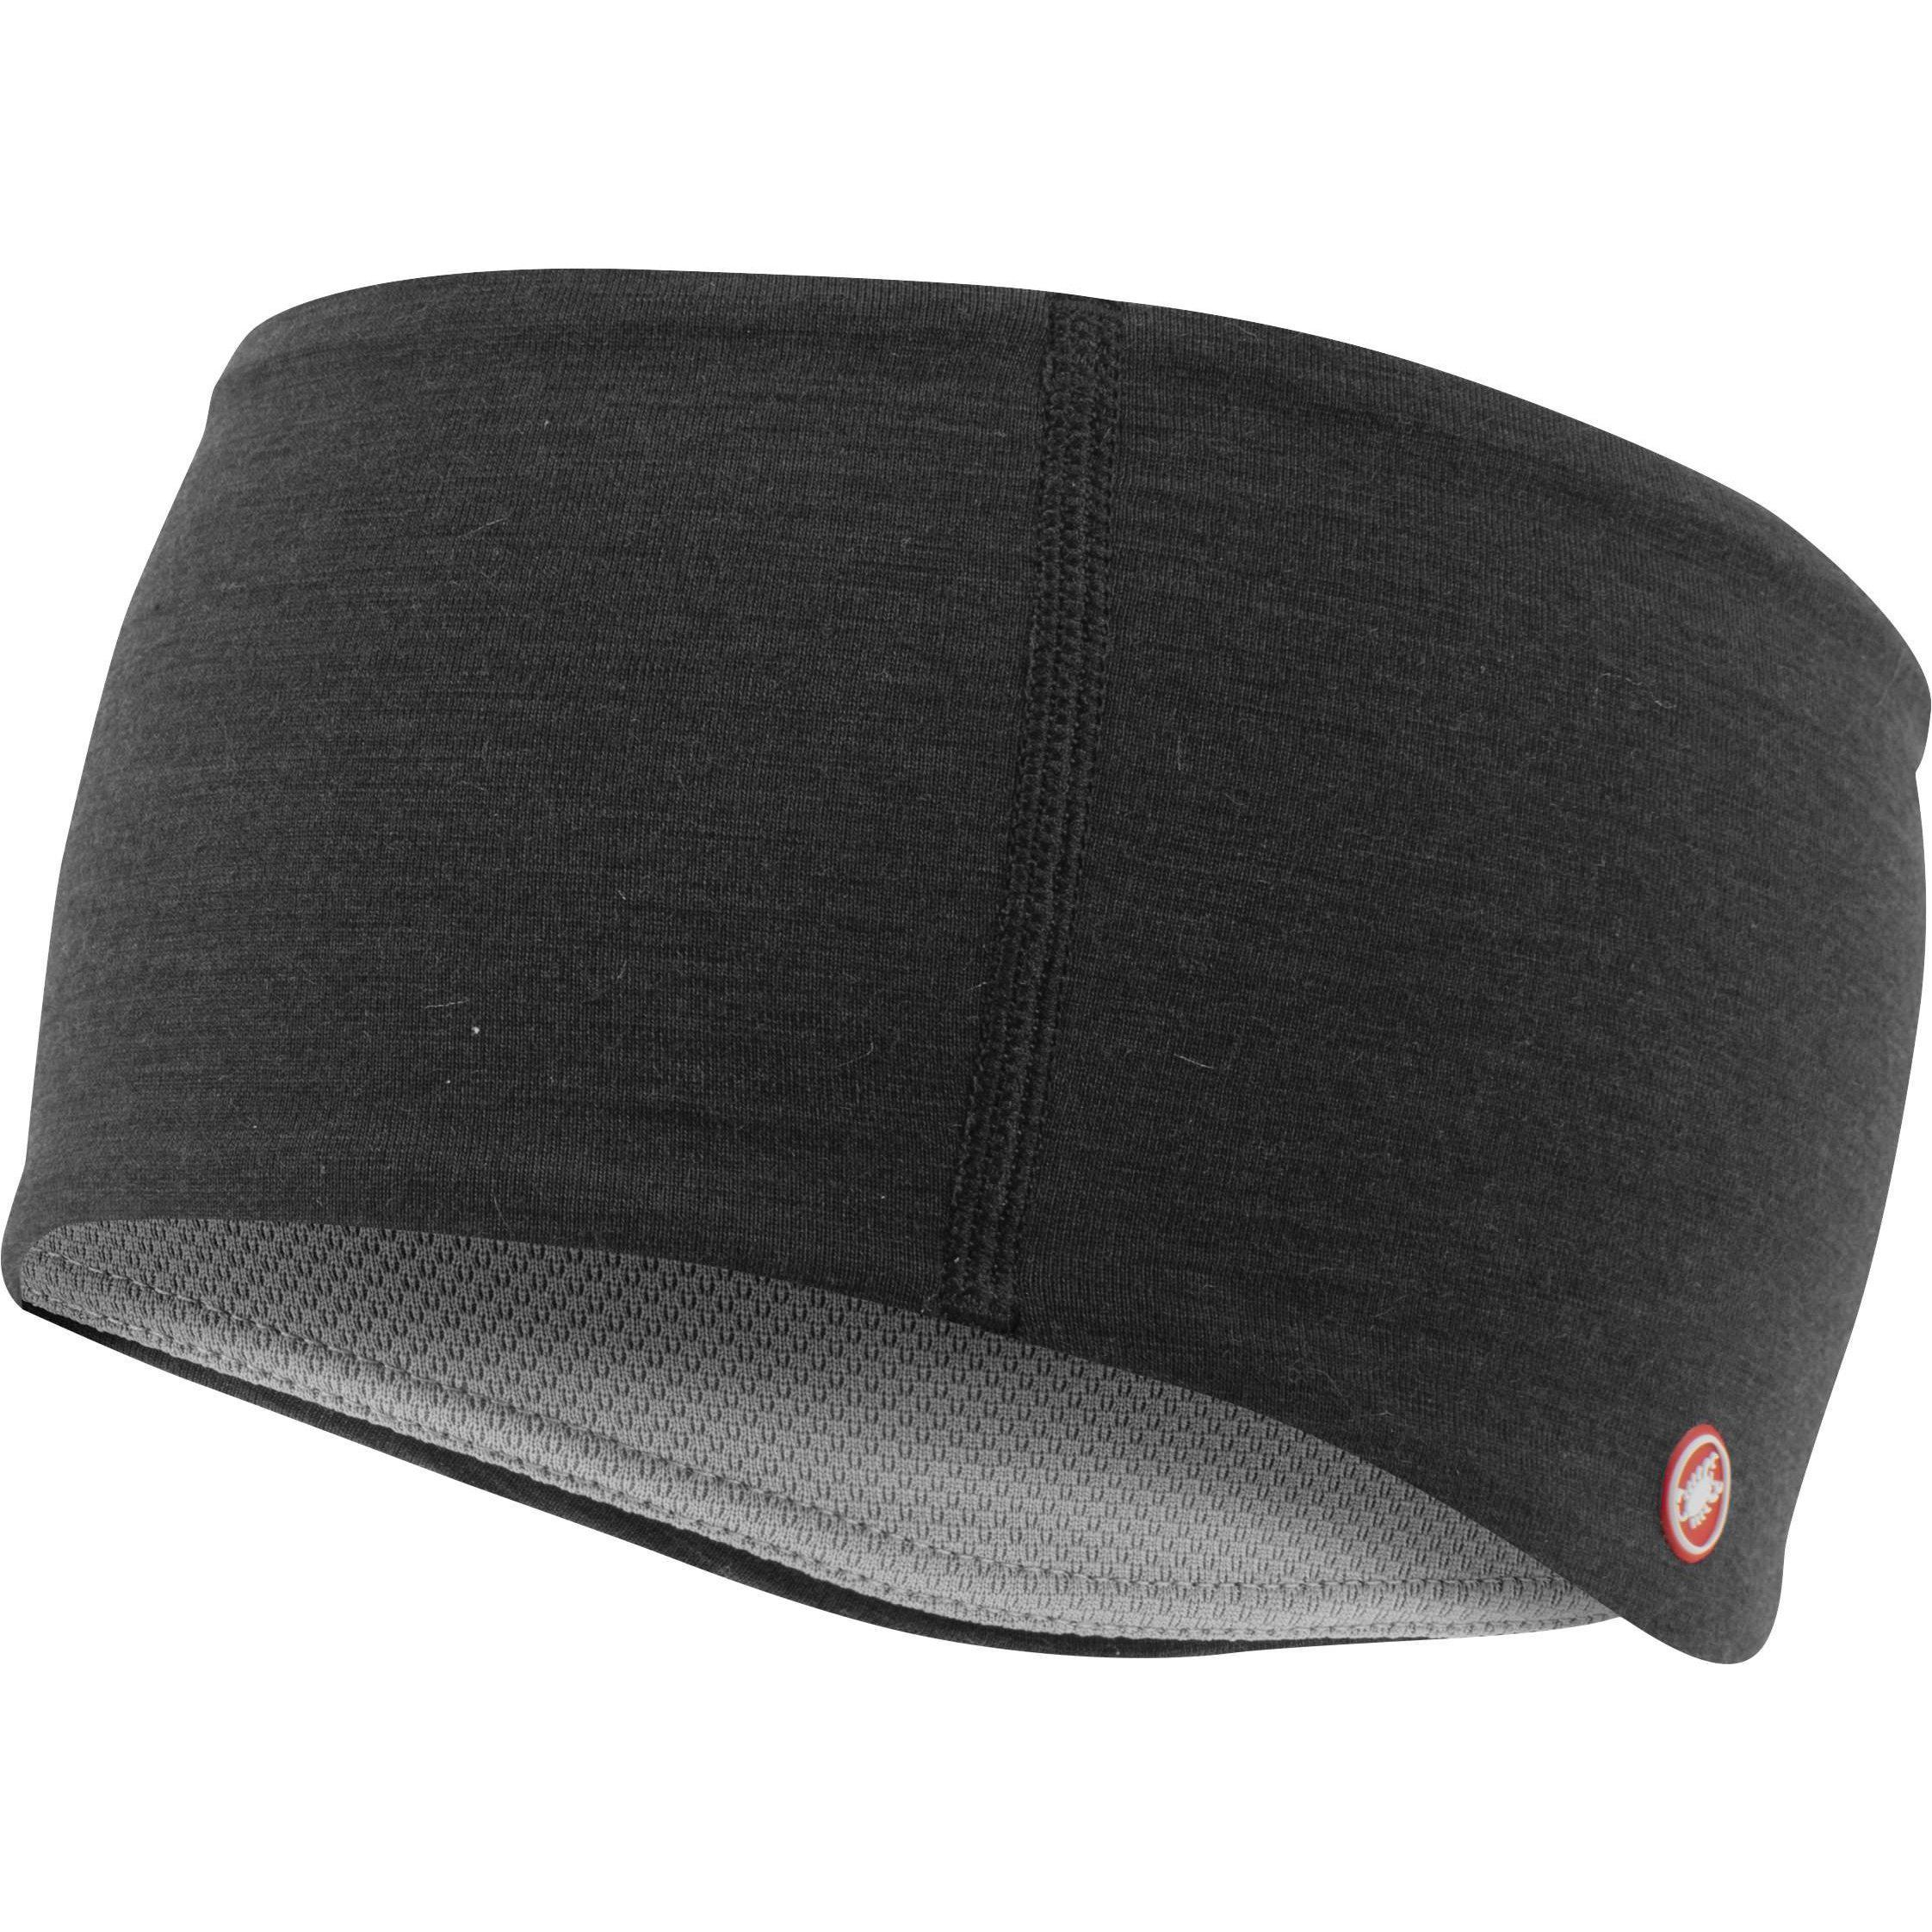 Castelli-Castelli Bandito Headband-Light Black-UNI-CS205470858-saddleback-elite-performance-cycling